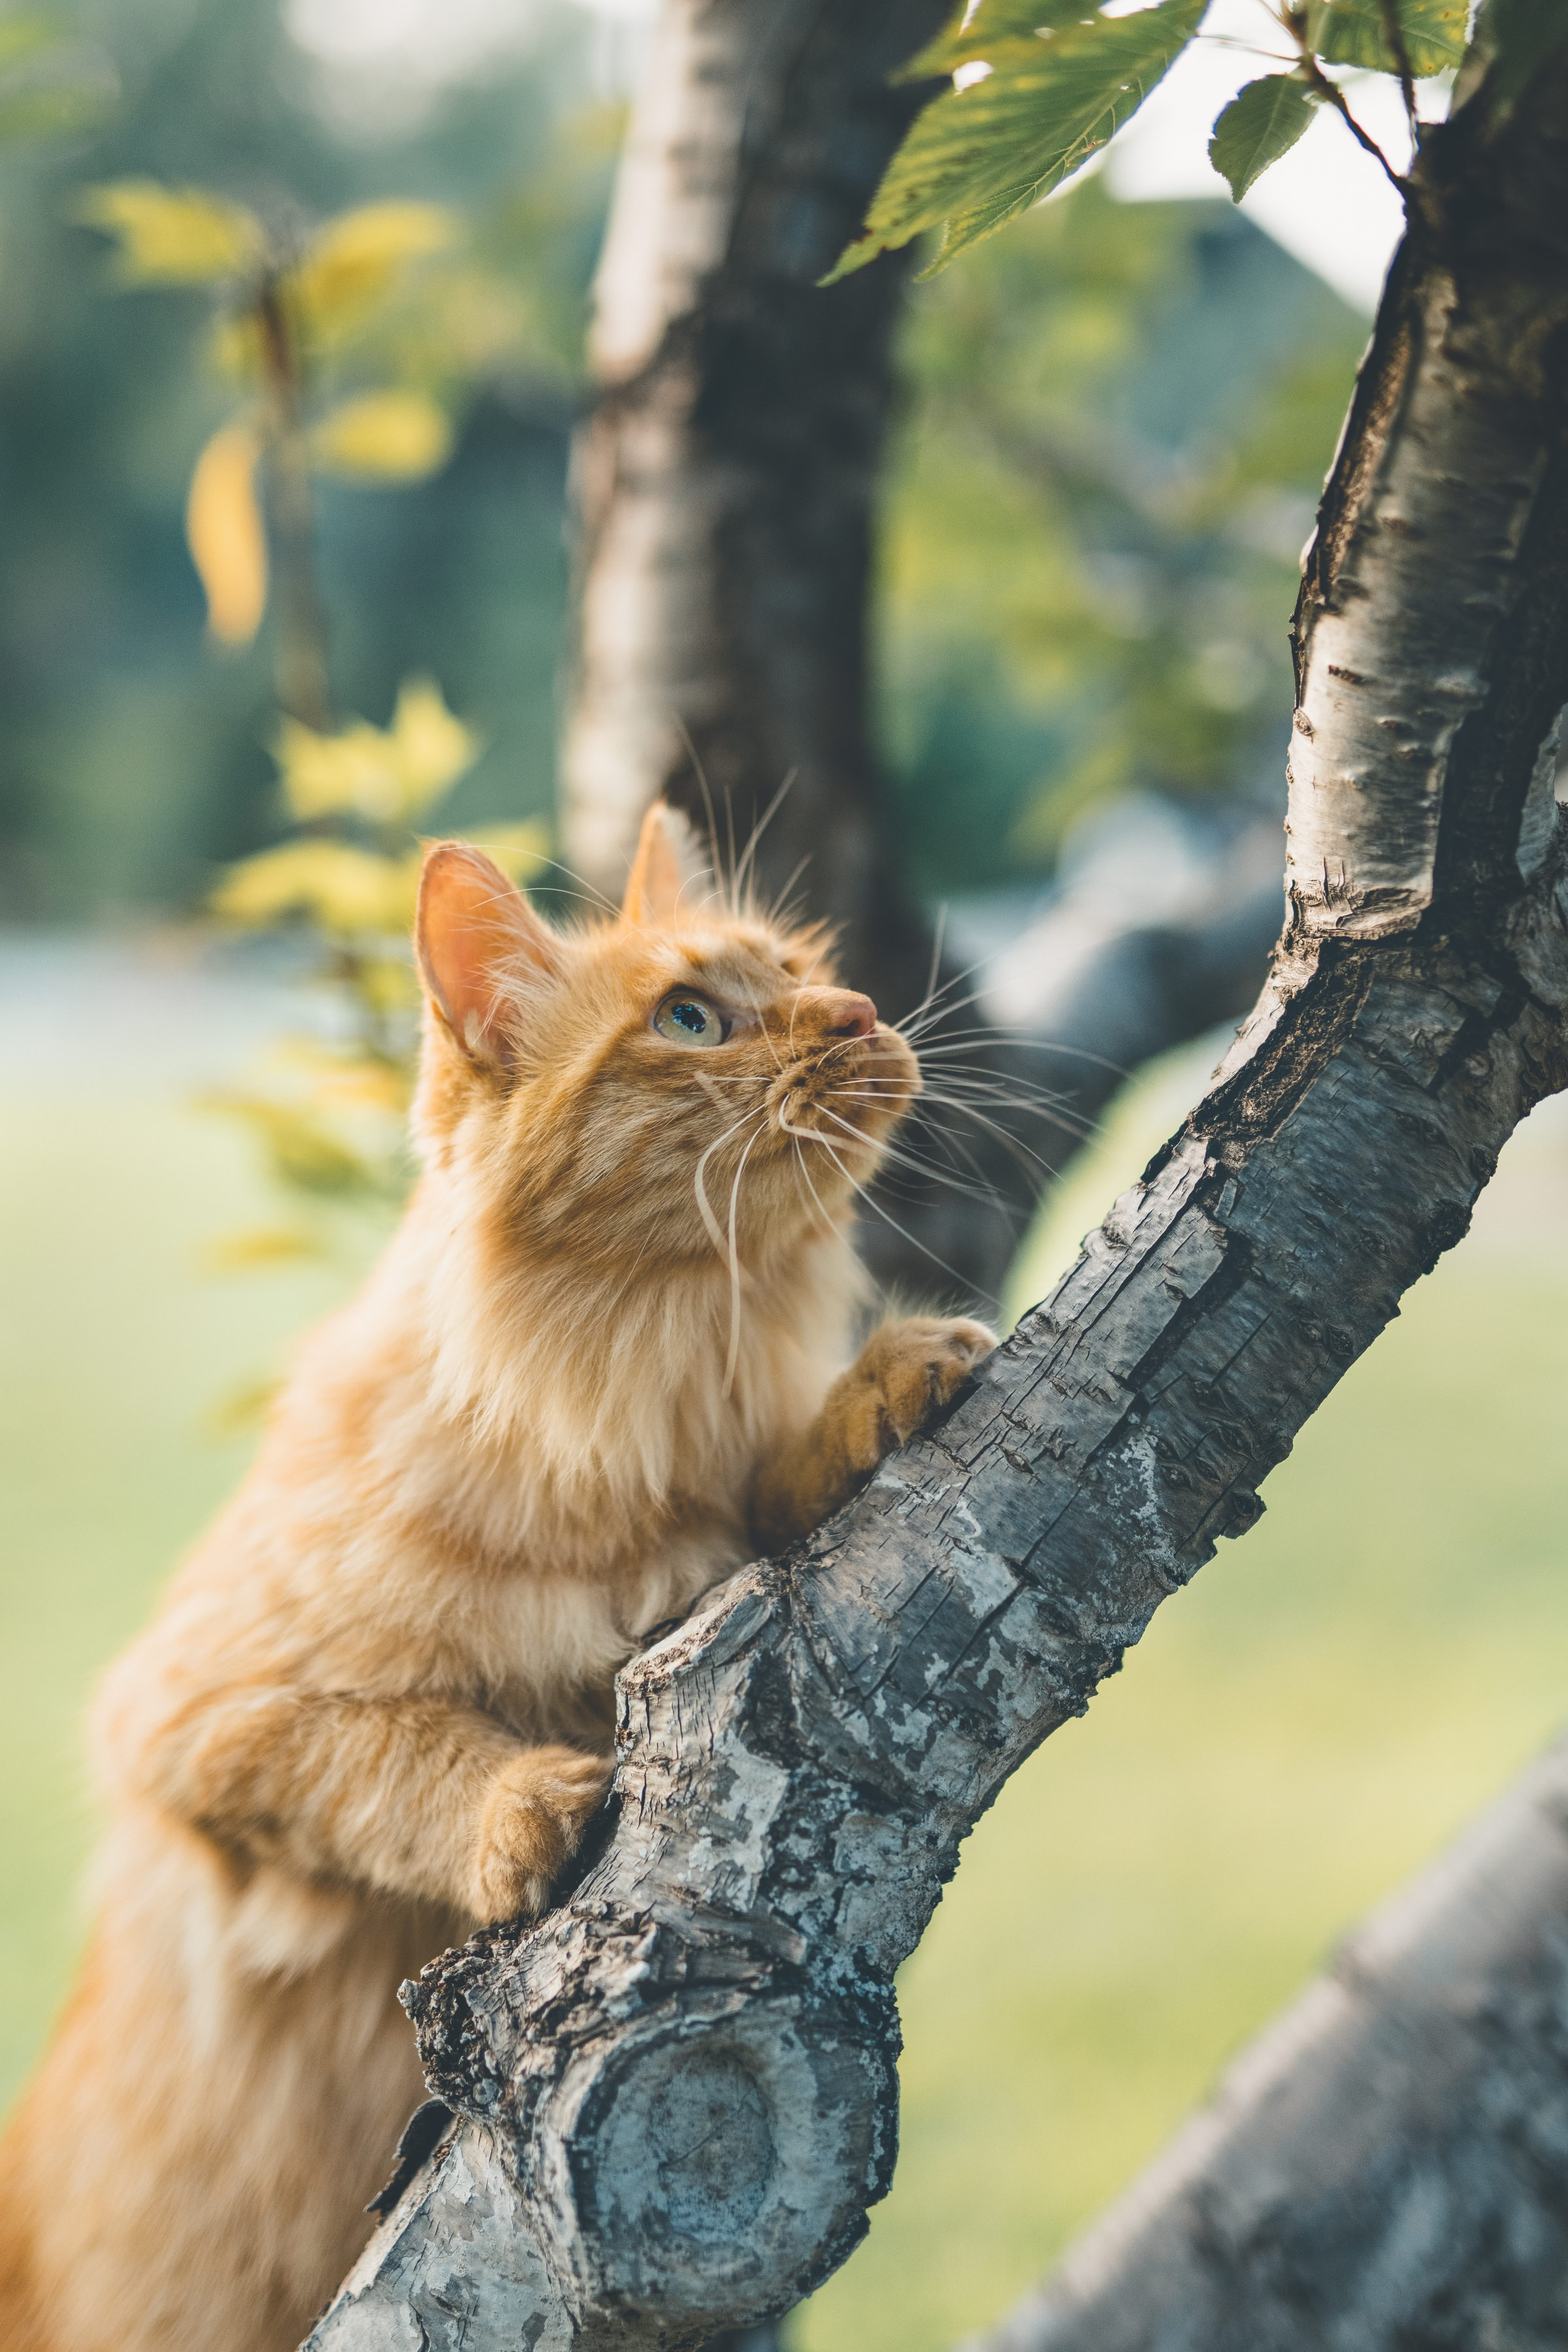 155921 download wallpaper Animals, Cat, Sight, Opinion, Fluffy, Wood, Tree screensavers and pictures for free